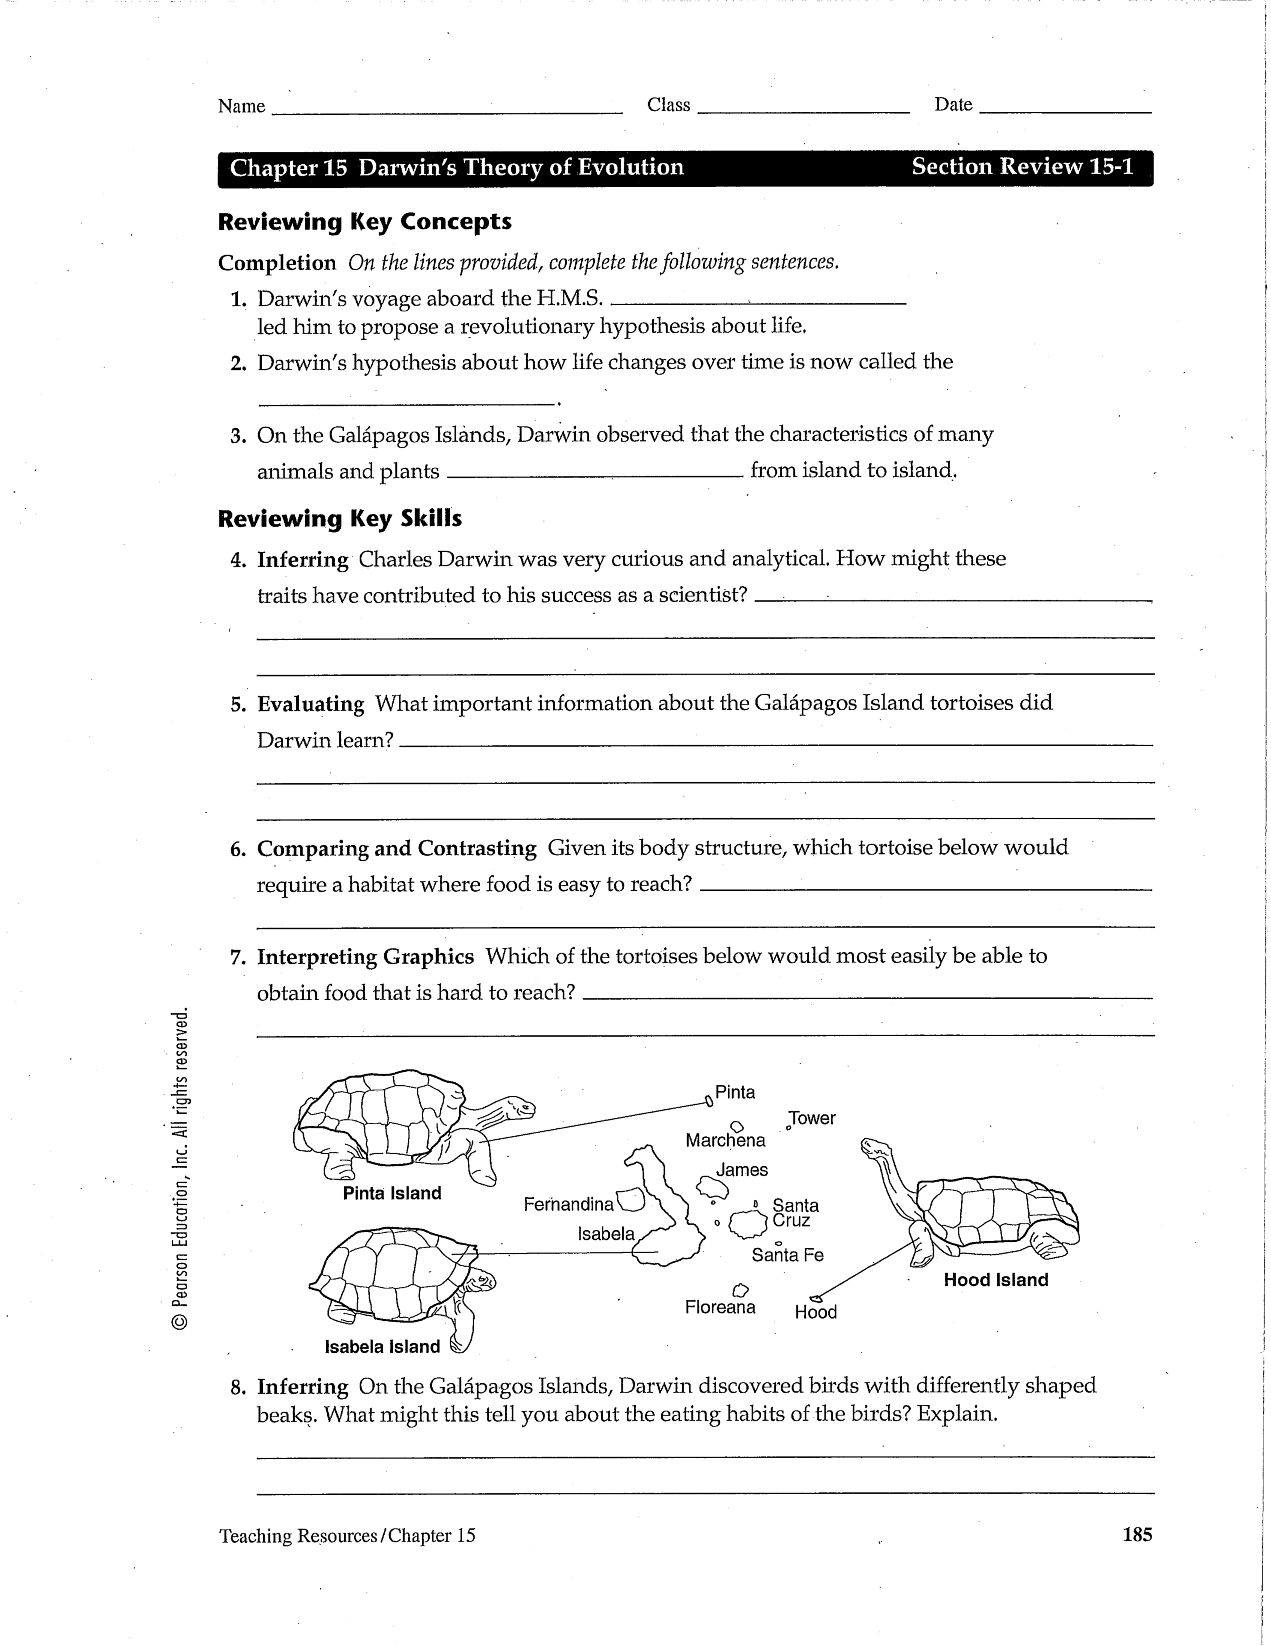 Chapter 10 Kitchen Utensils Worksheet Chapter 9 Kitchen Utensils Worksheet Kitchen Utensils